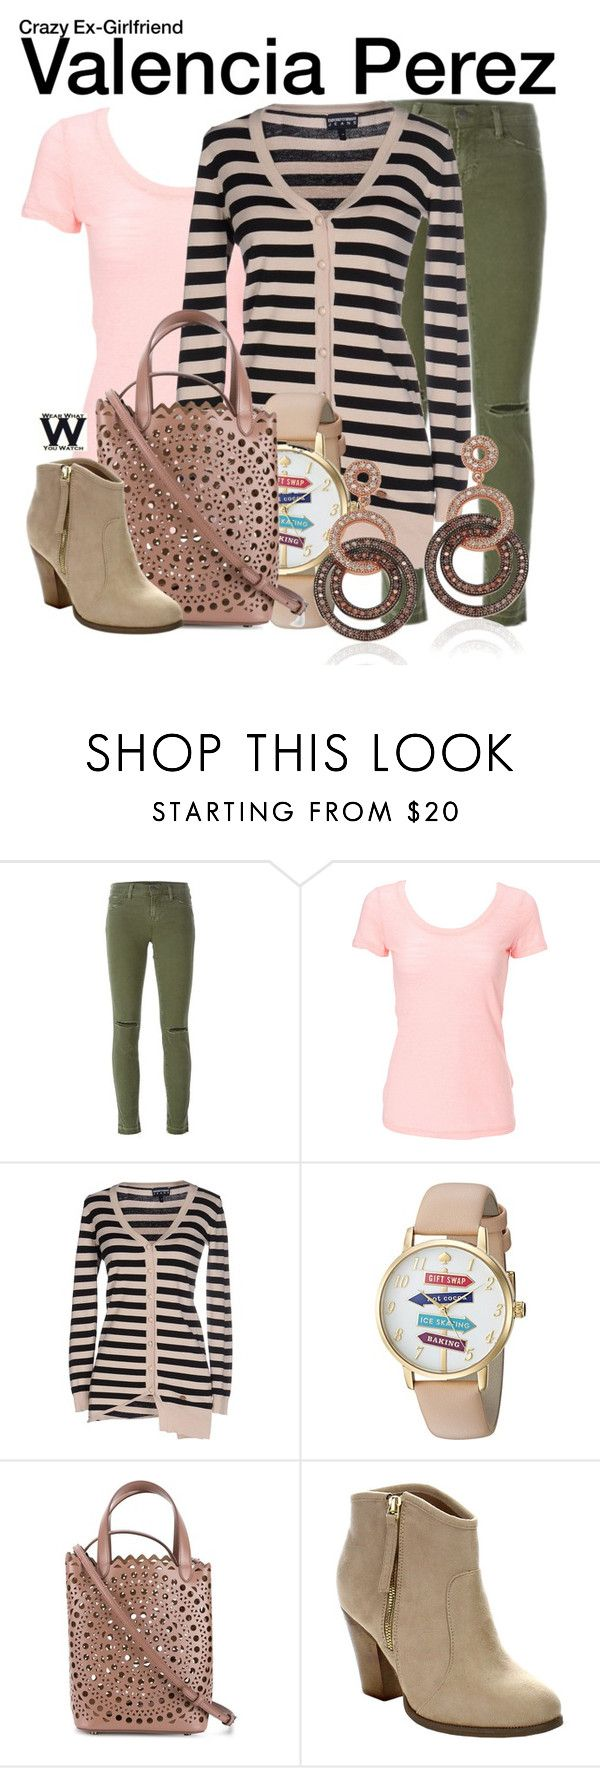 """Crazy Ex-Girlfriend"" by wearwhatyouwatch ❤ liked on Polyvore featuring J Brand, Simplex Apparel, Armani Jeans, Kate Spade, Alaïa, Liliana, Suzy Levian, television and wearwhatyouwatch"